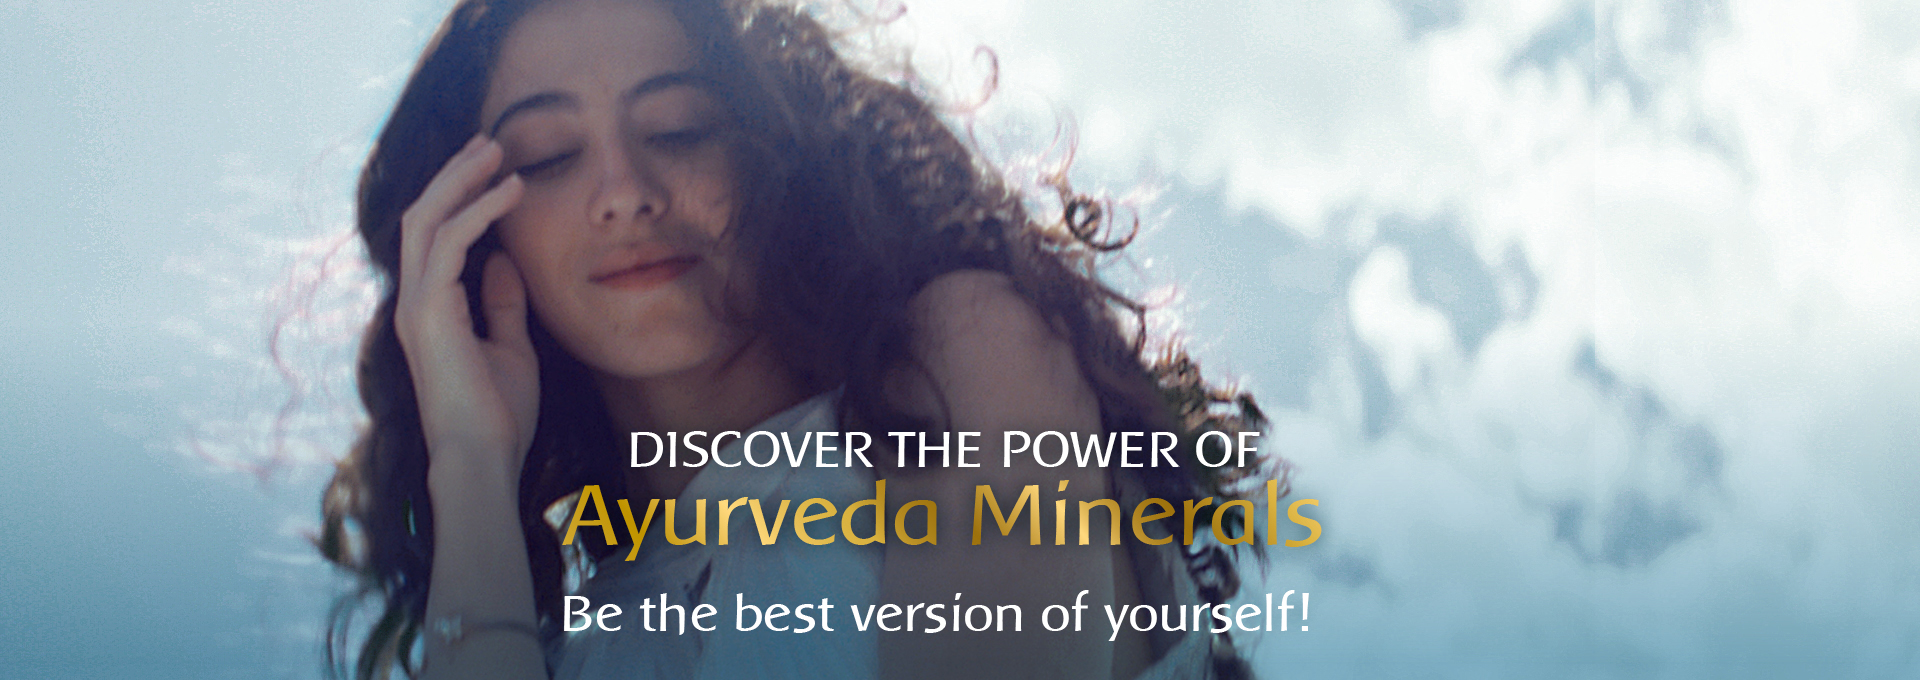 Discover the Power of Ayurveda Minerals - Be the best version of yourself!